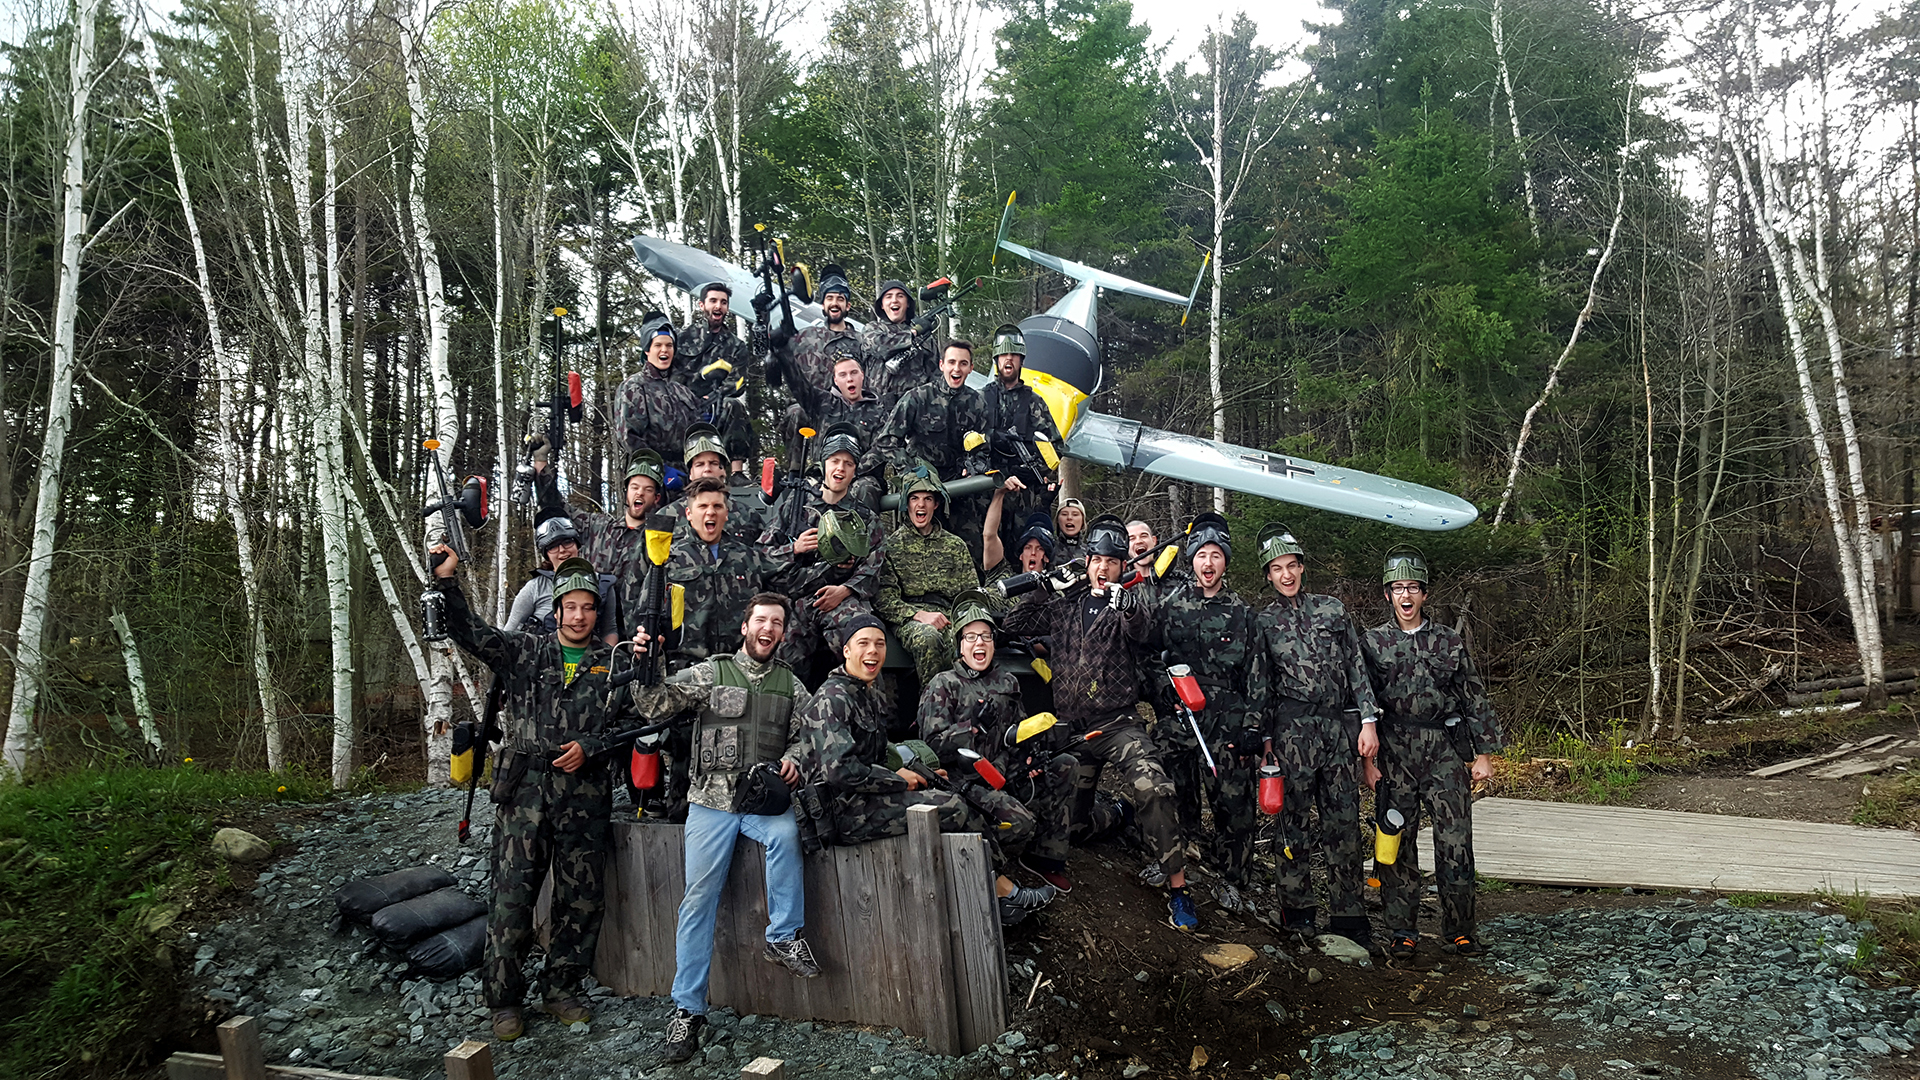 C'est le débarquement officiel au Paintball North Hatley